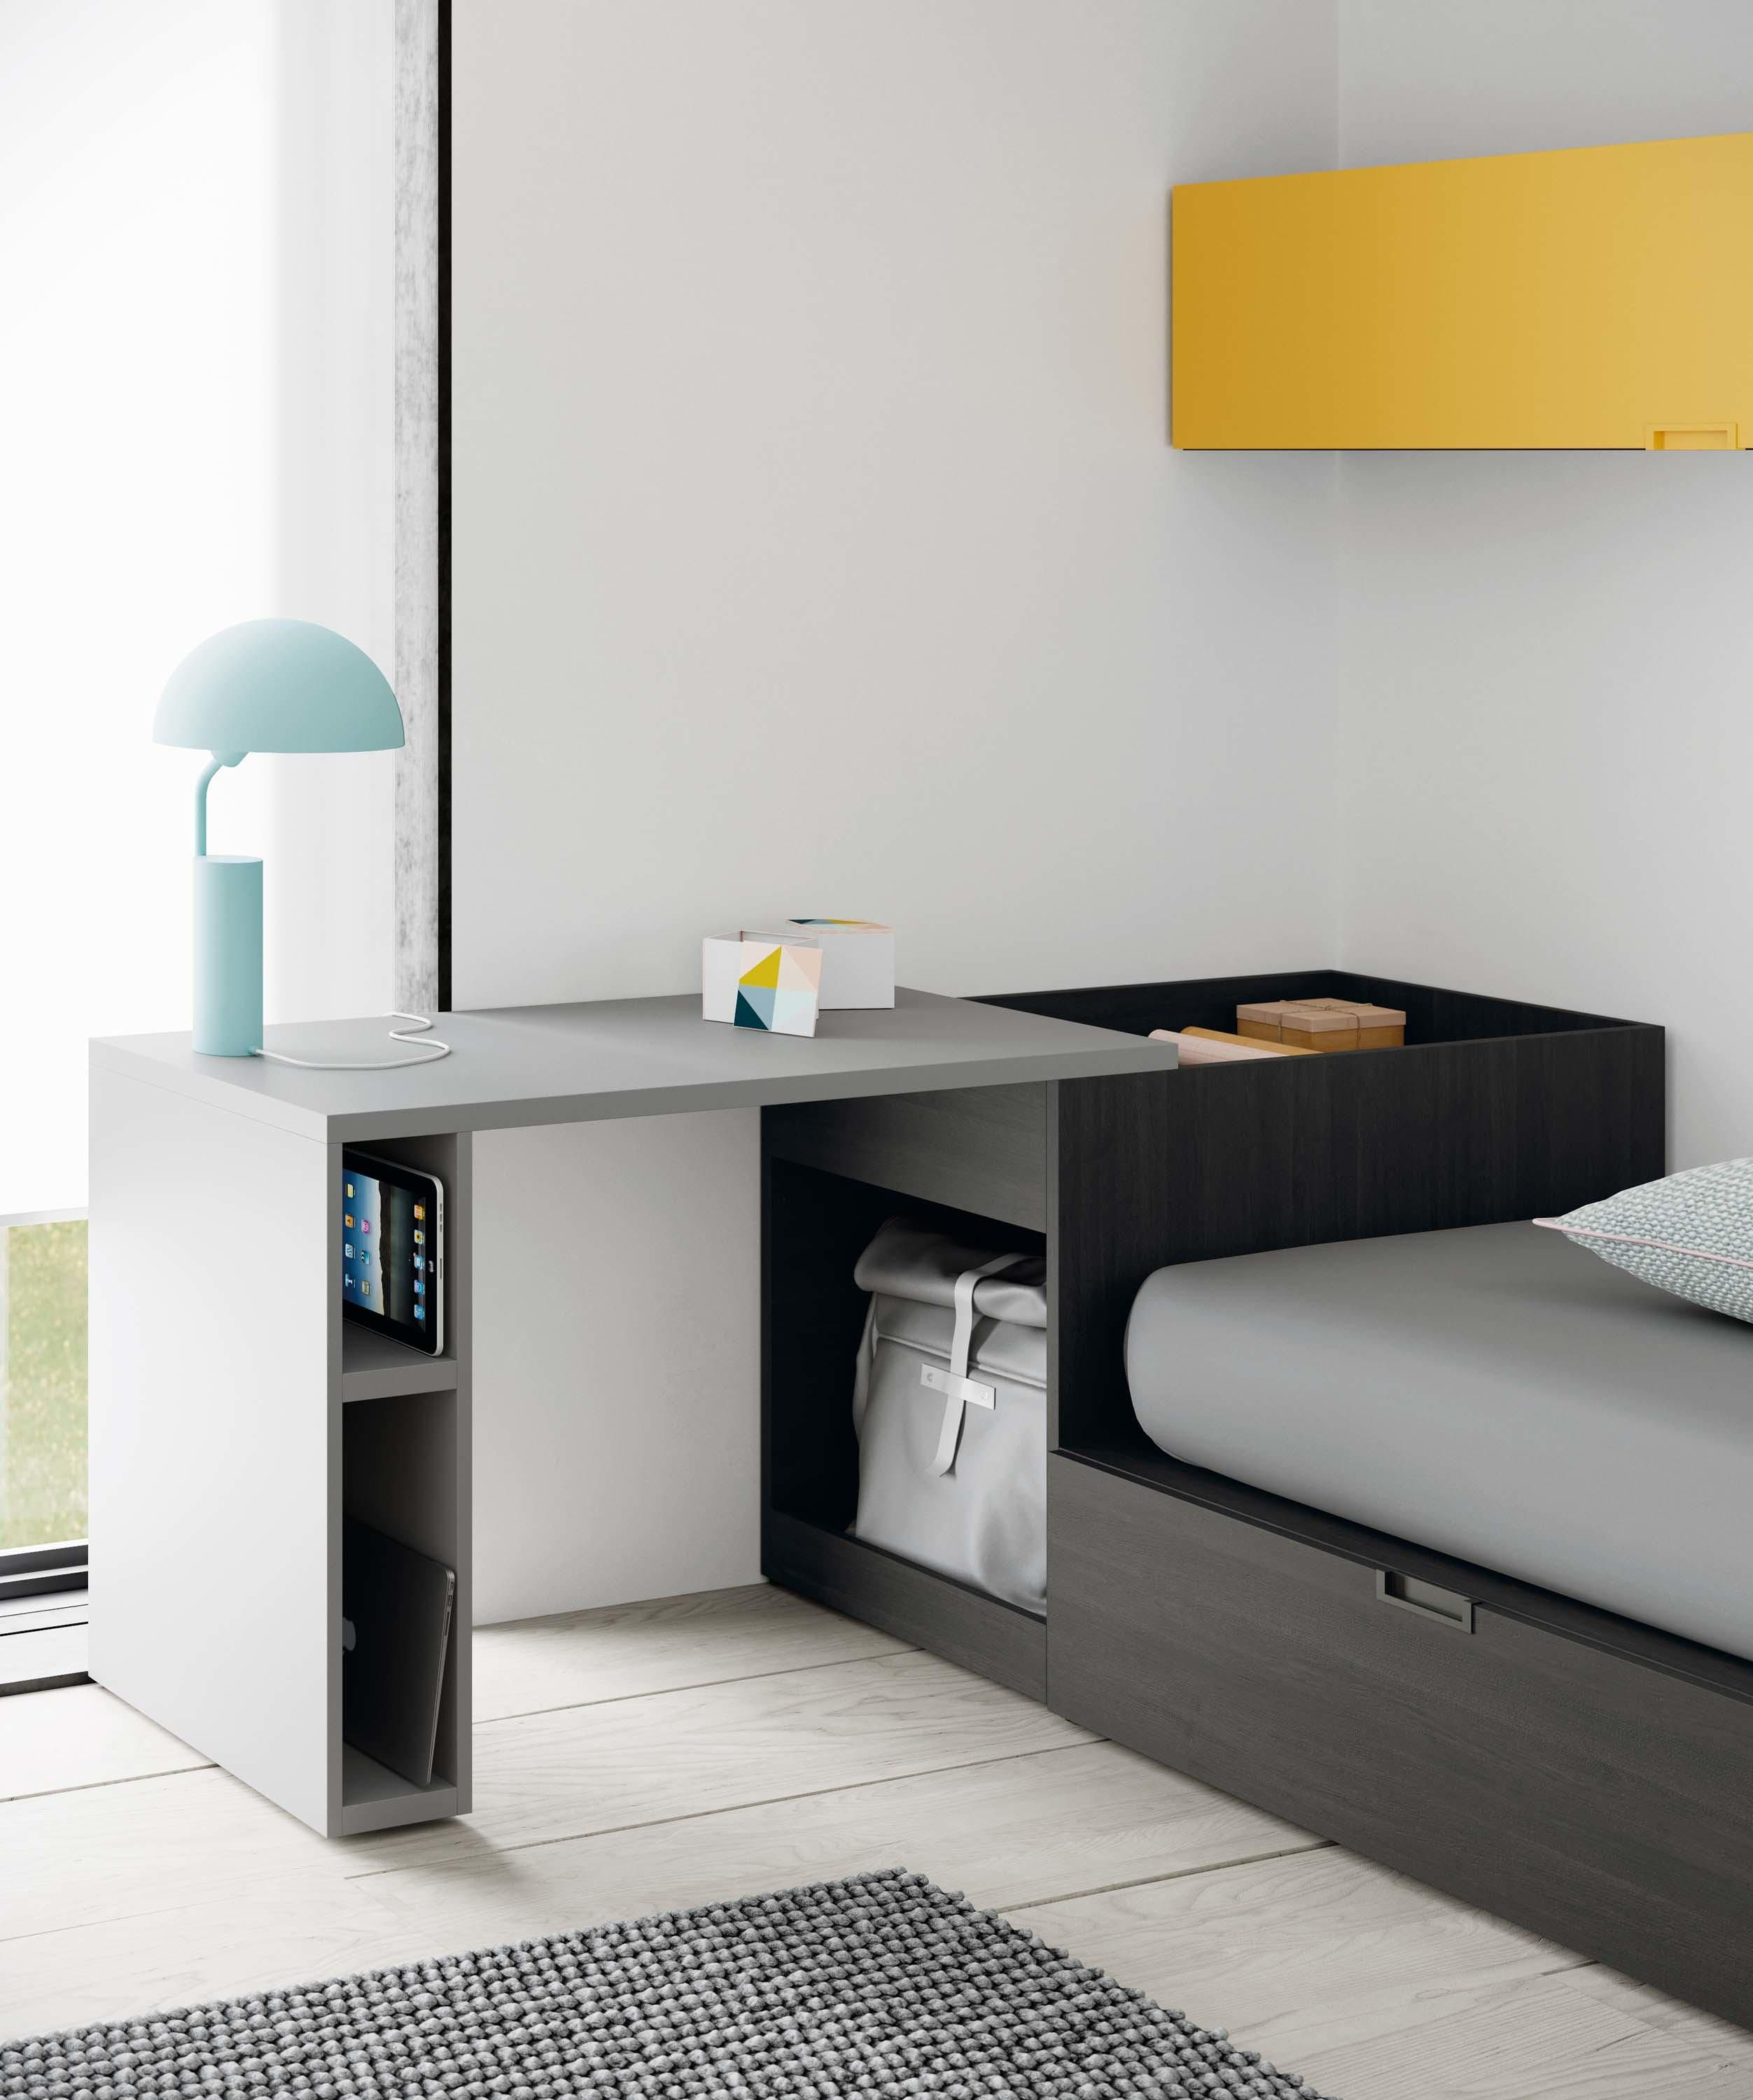 YOUTH BEDROOMS 12 - Kids beds from JJP Muebles  Architonic